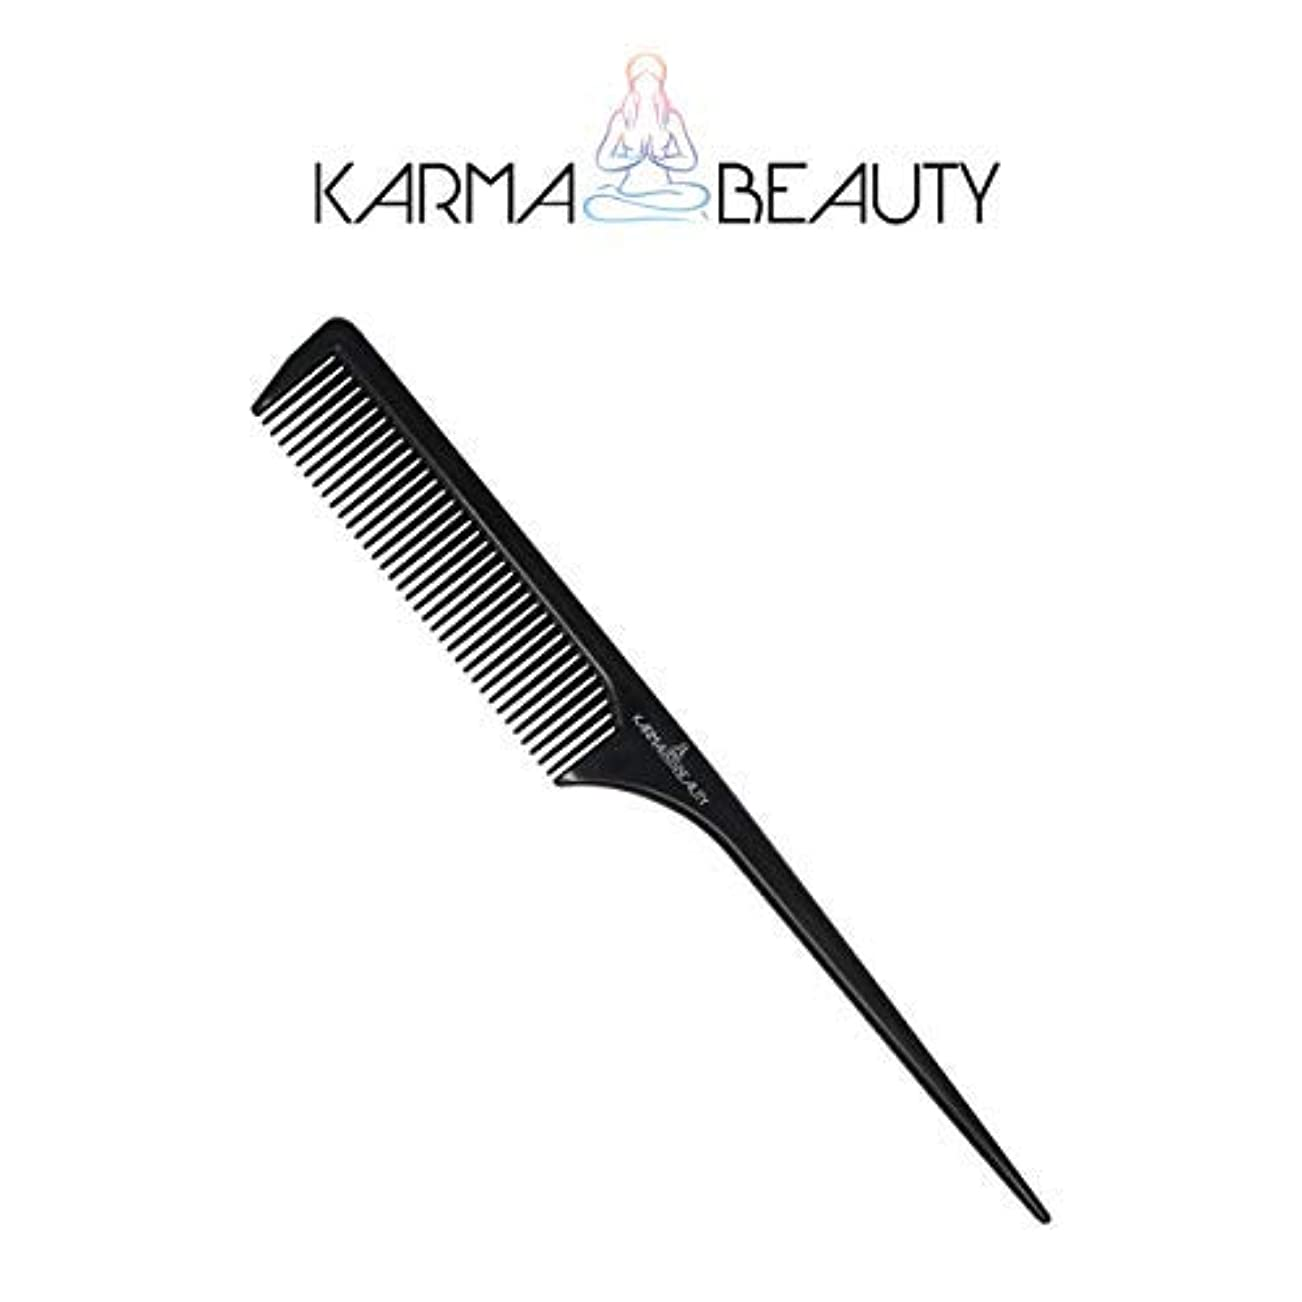 Tail Comb   Fine Tooth Hair Comb   Thin and Long Handle   Teasing Comb   For All Hair Type   Karma Beauty   (Black...